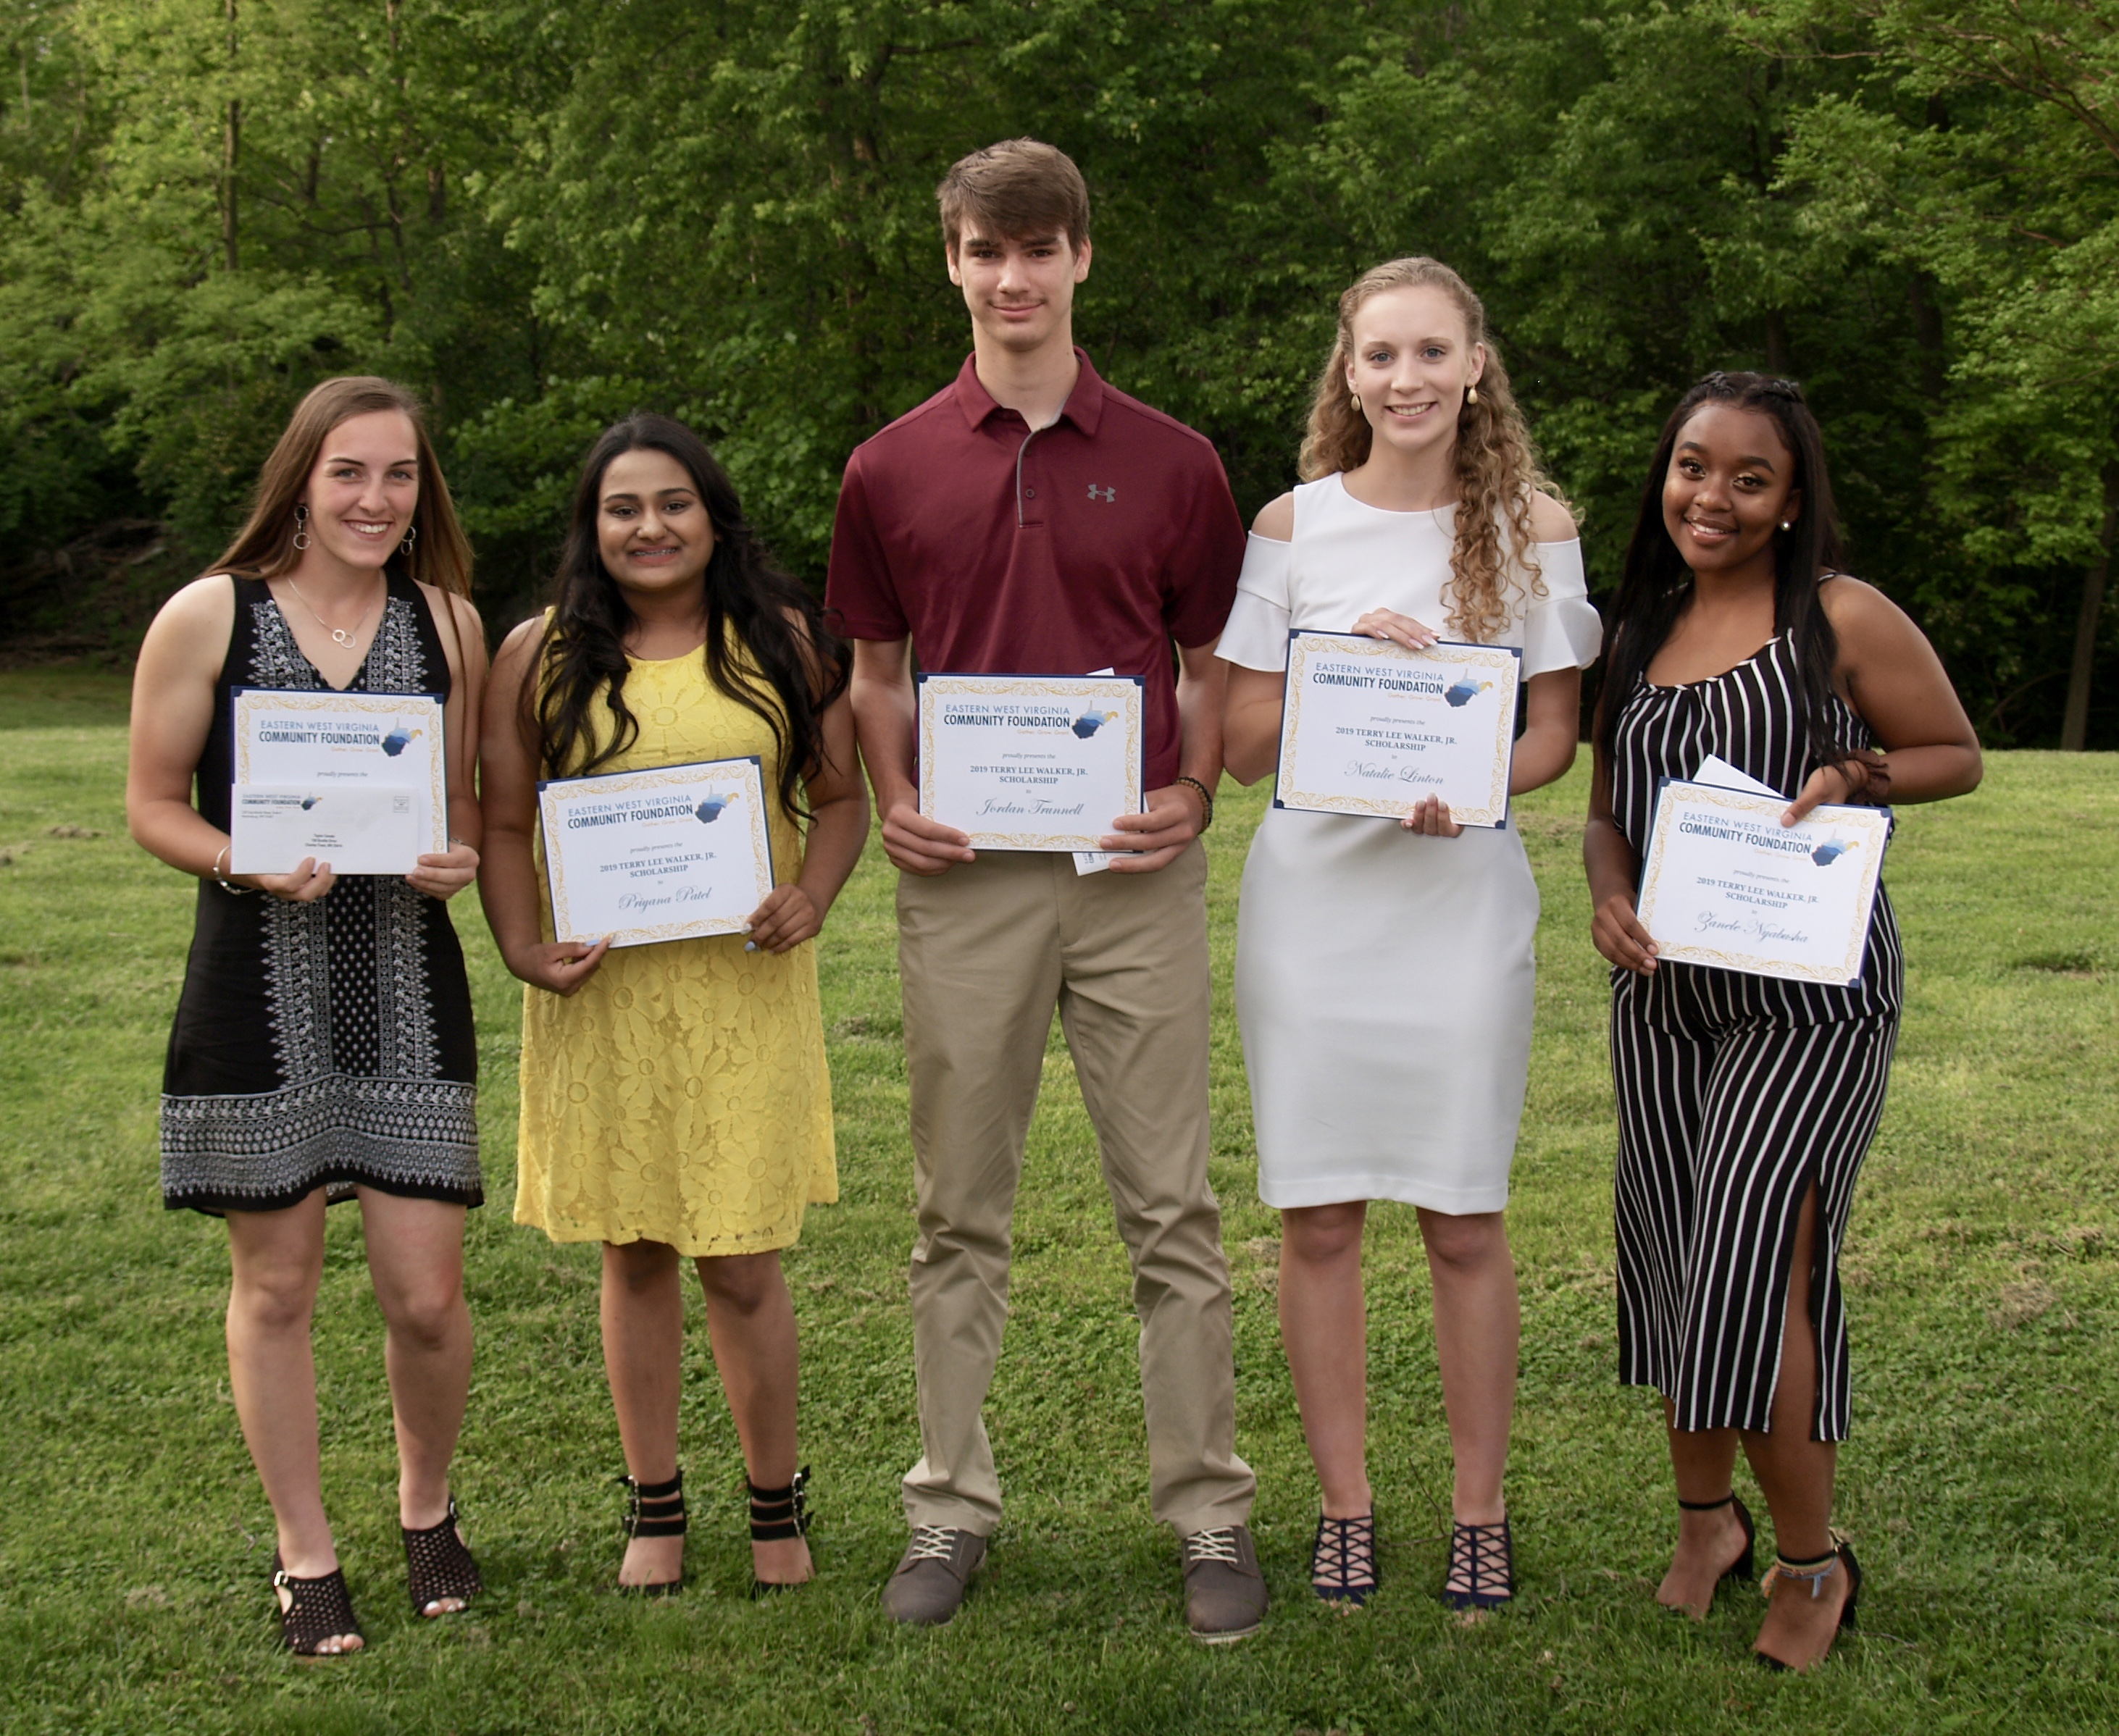 EWVCF Scholarship Awards Top $116,000 - ewvcf org